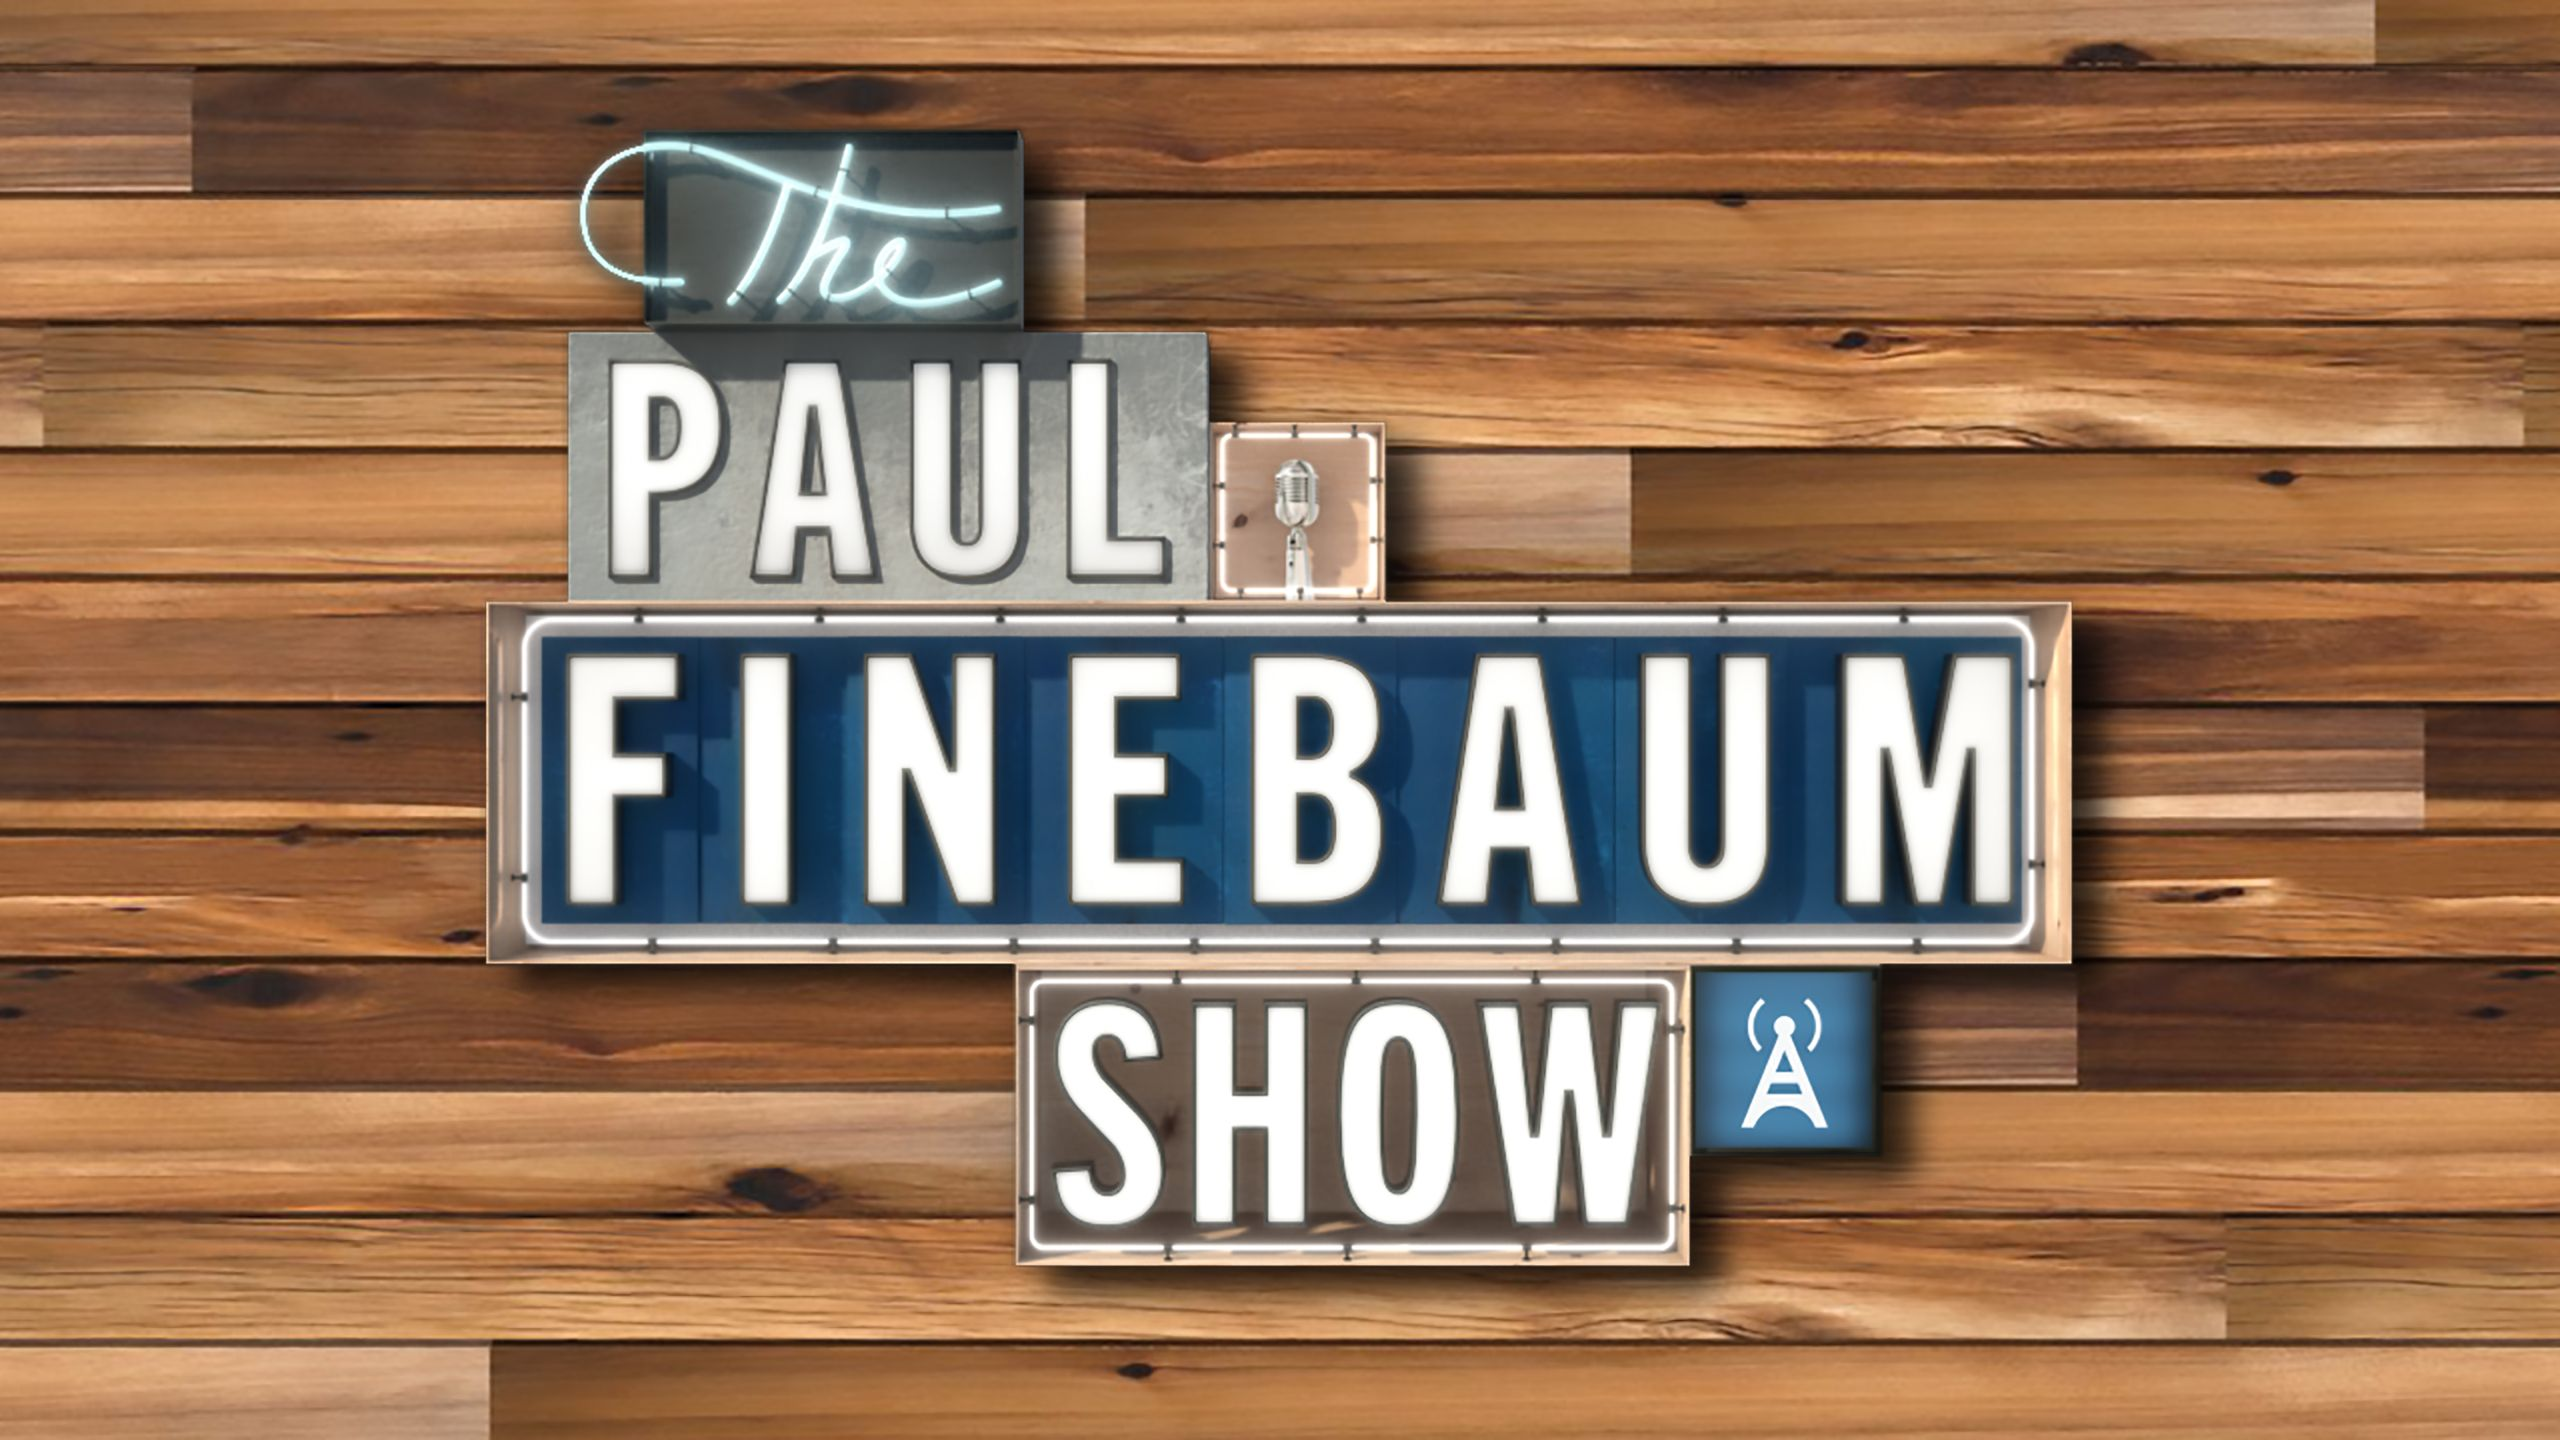 Mon, 10/23 - The Paul Finebaum Show